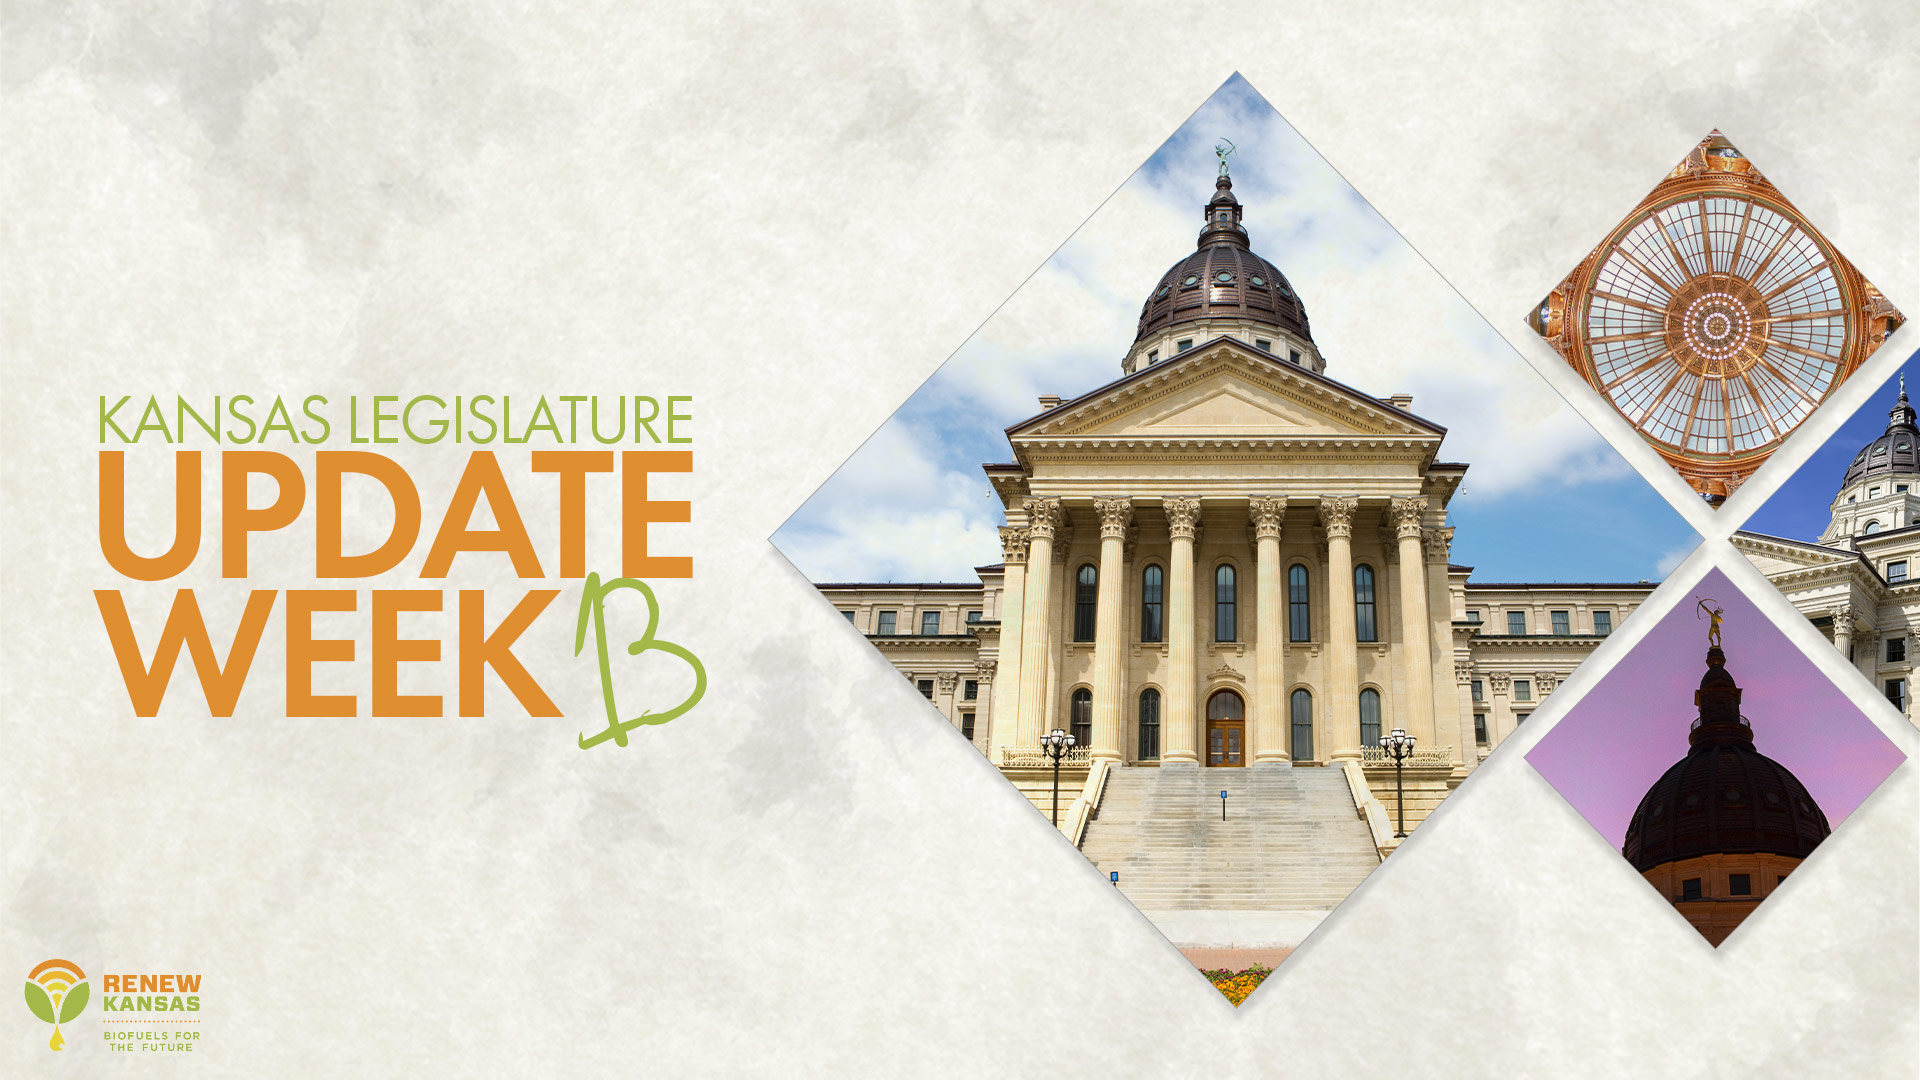 Kansas Legislative Update - Week 13